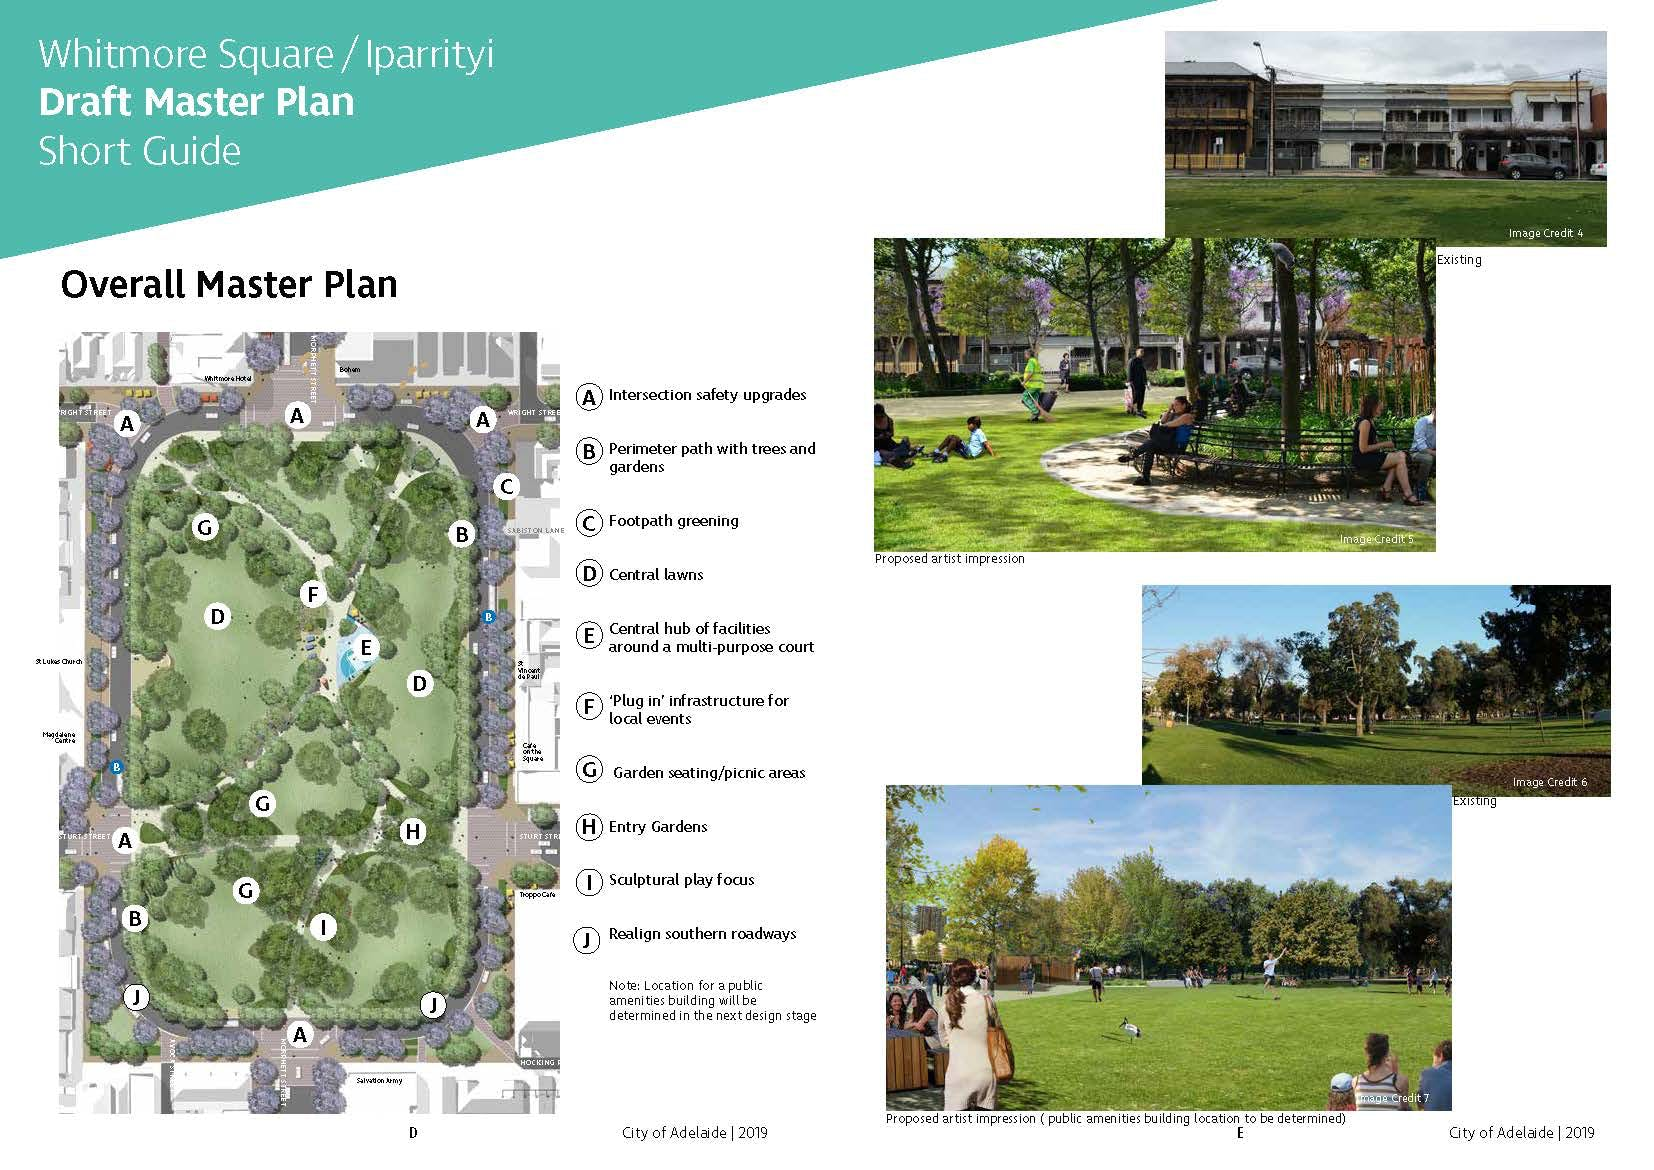 Short Guide to Master Plan page 2